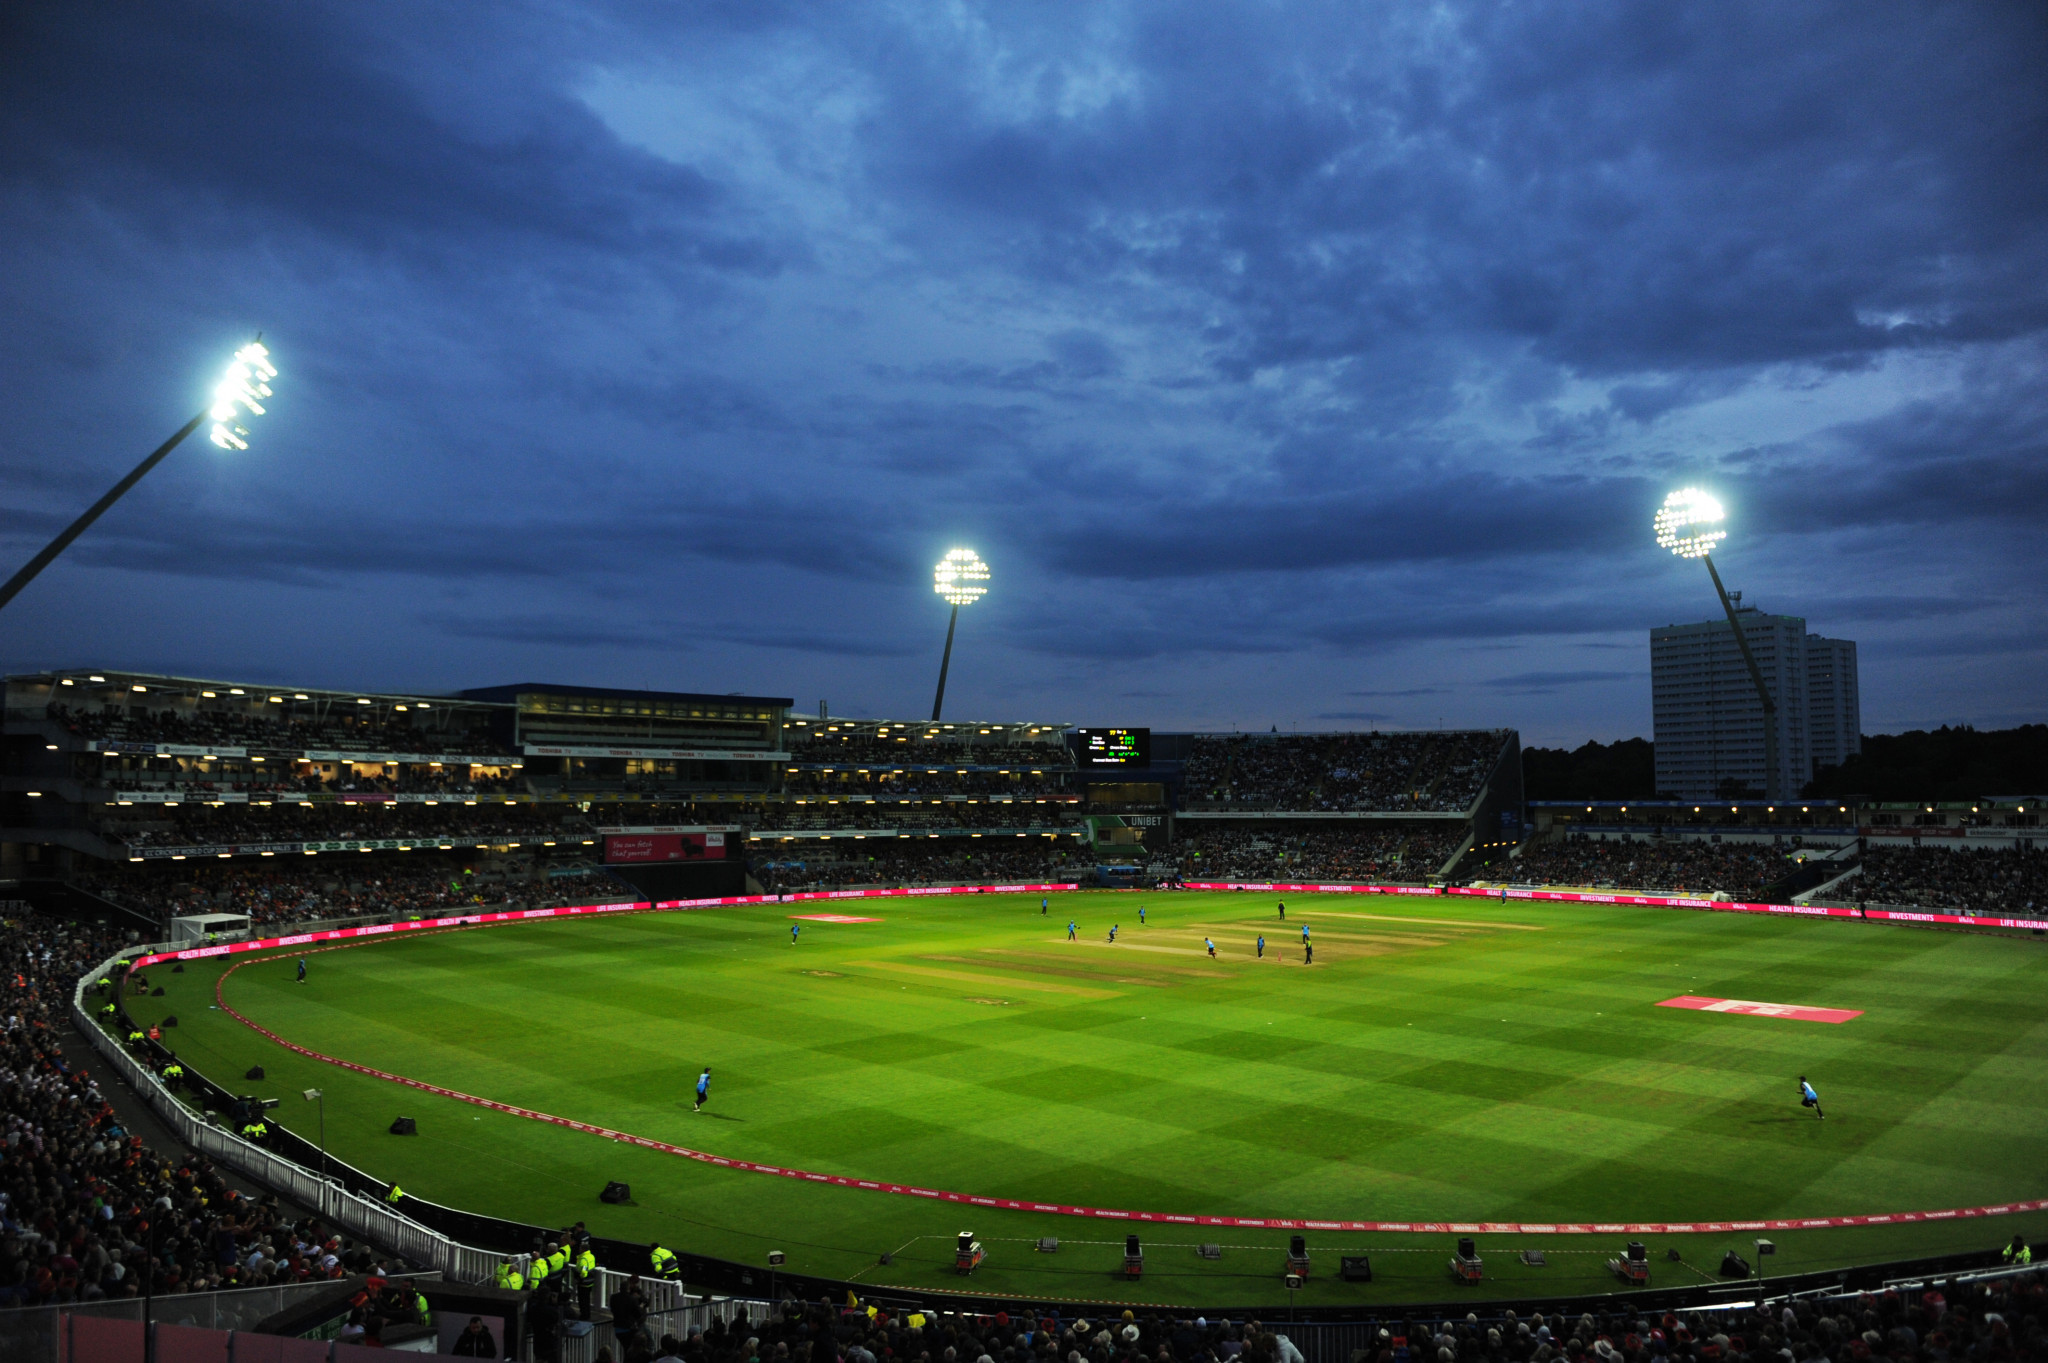 Women's cricket will be played at Edgbaston during the Birmingham 2022 Commonwealth Games ©Getty Images